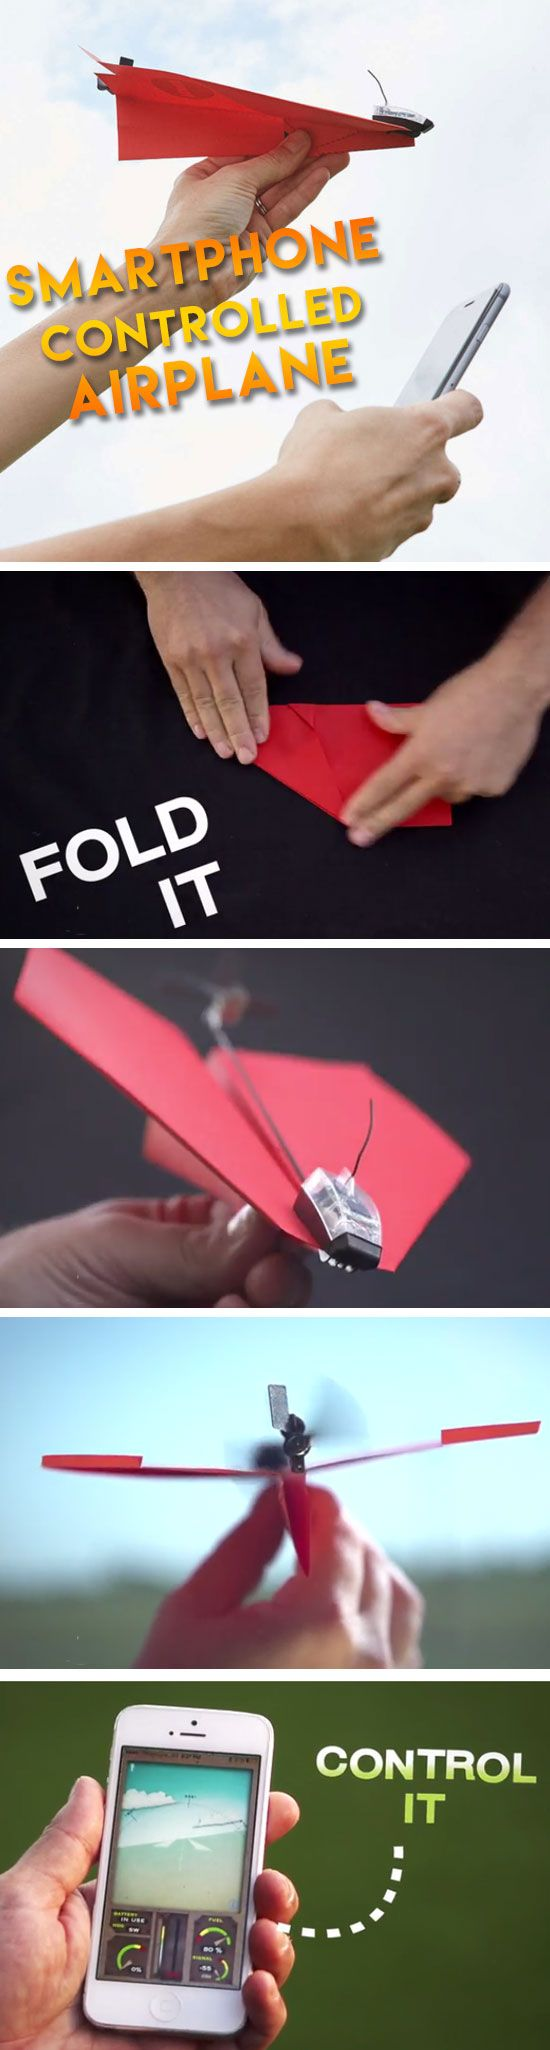 Smartphone Controlled Airplane | DIY Christmas Presents for Brothers | Inexpensive Christmas Gifts for Dad